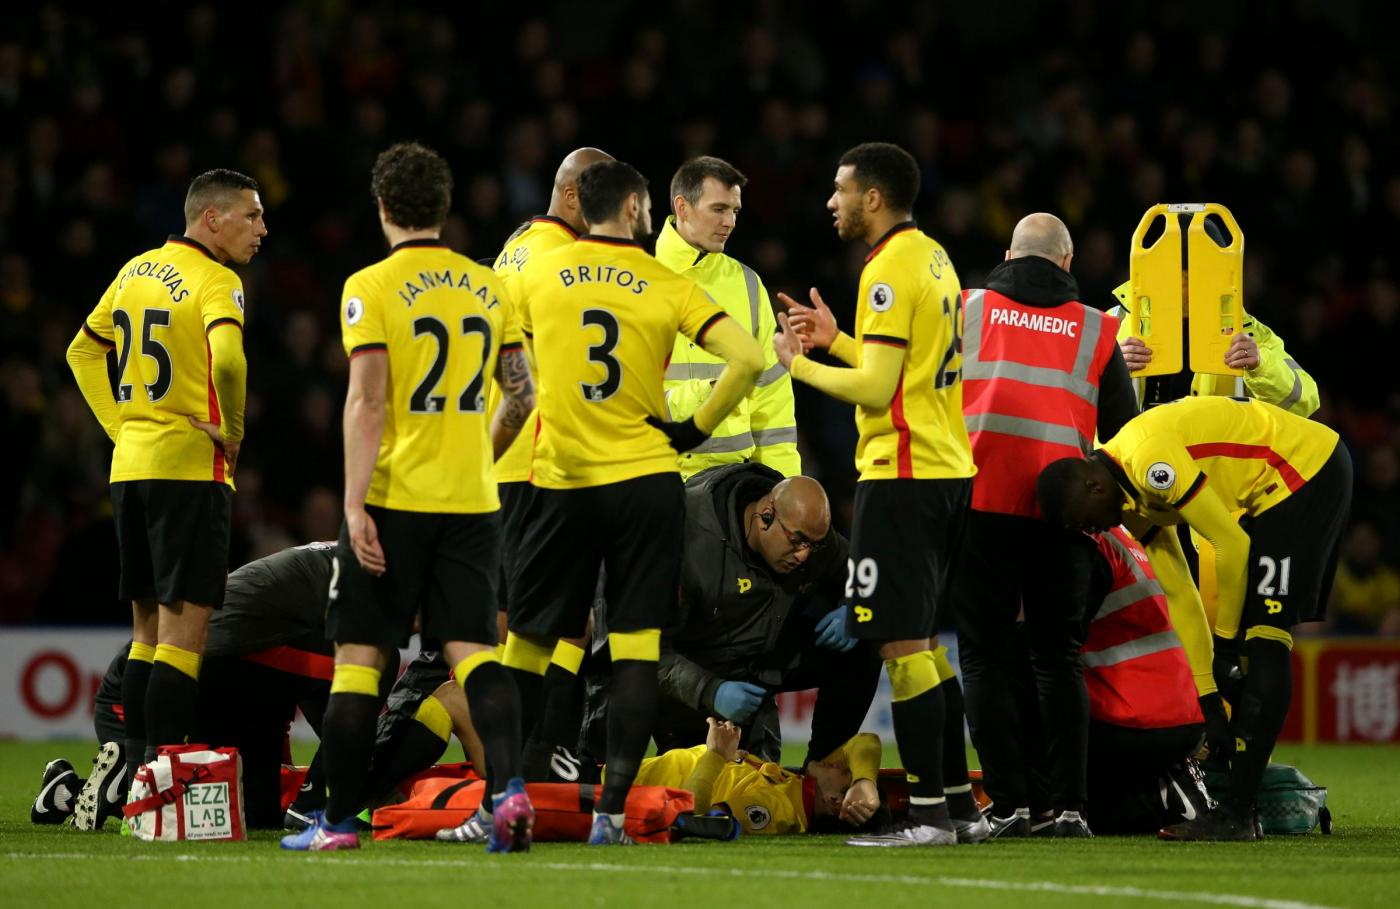 Watford-Burnley 7 aprile, analisi e pronostico premier League